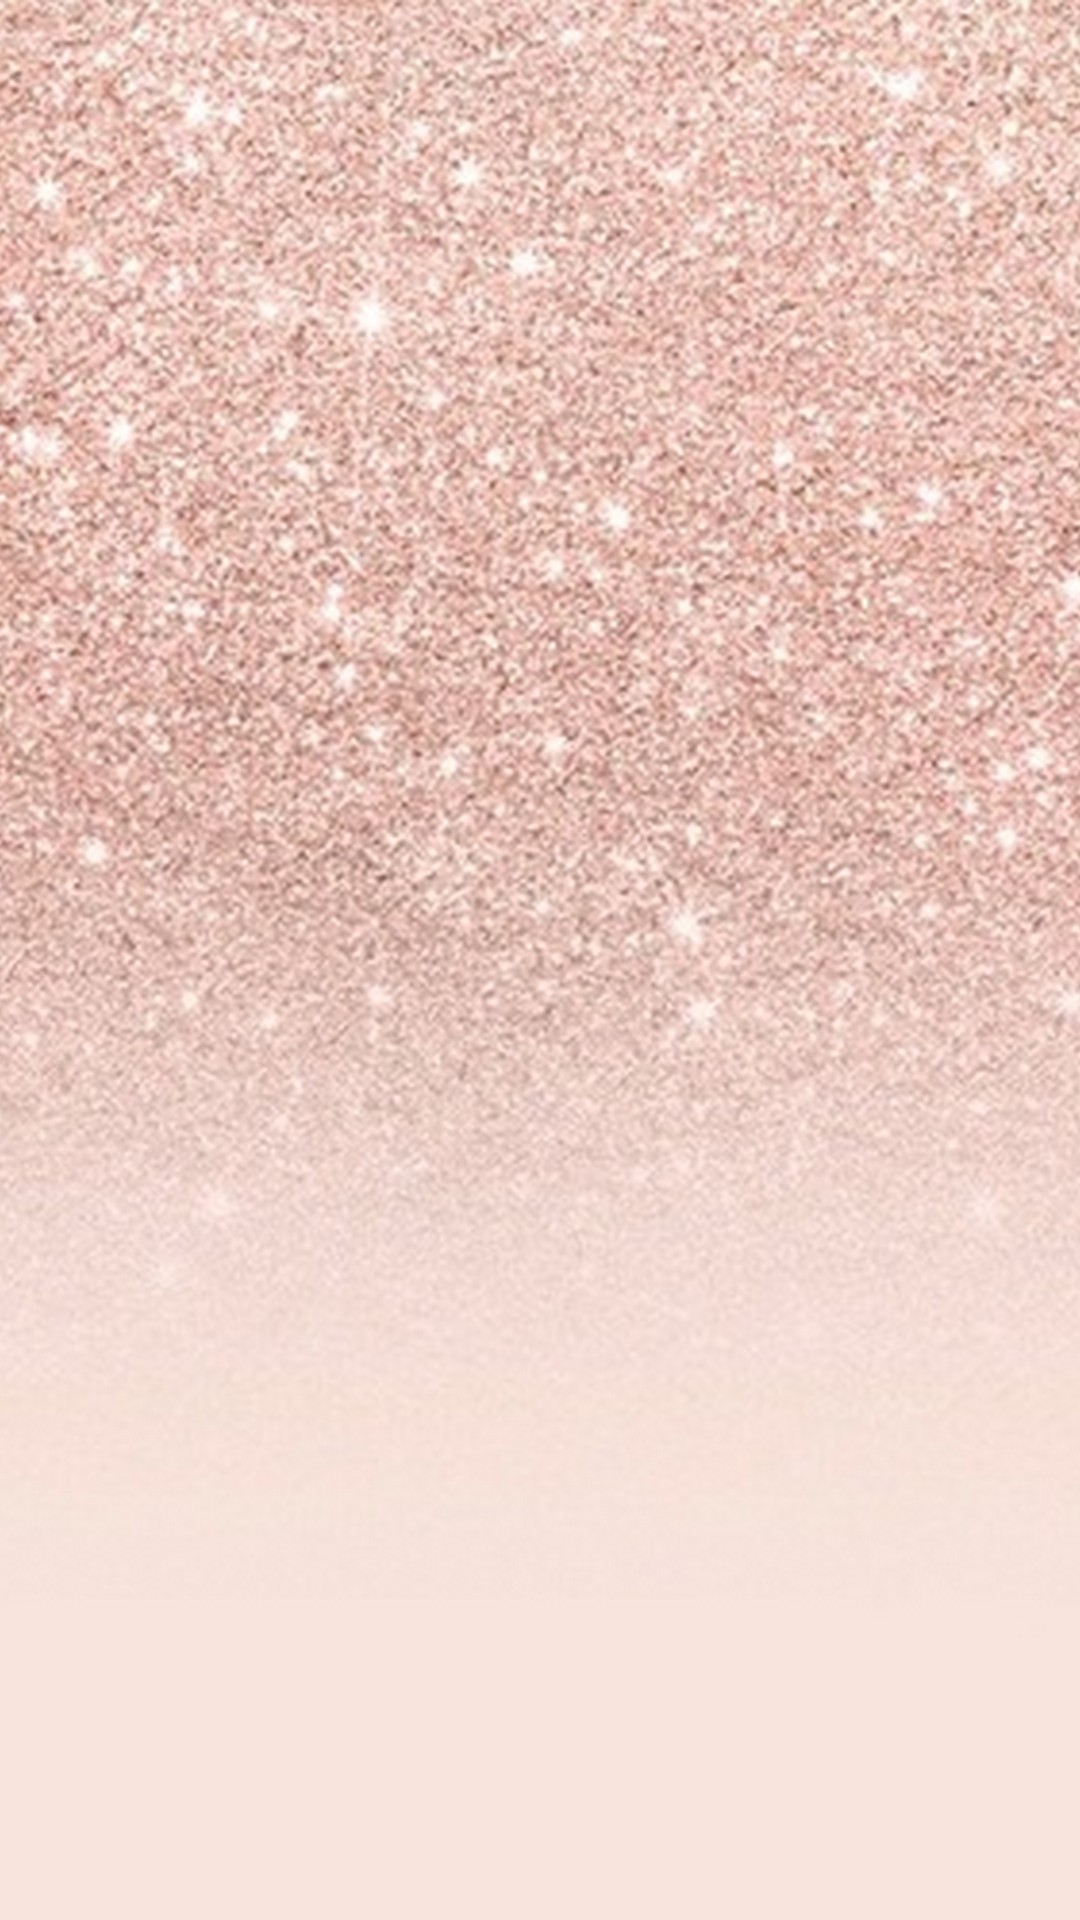 High Resolution Rose Gold Pink Marble Wallpaper